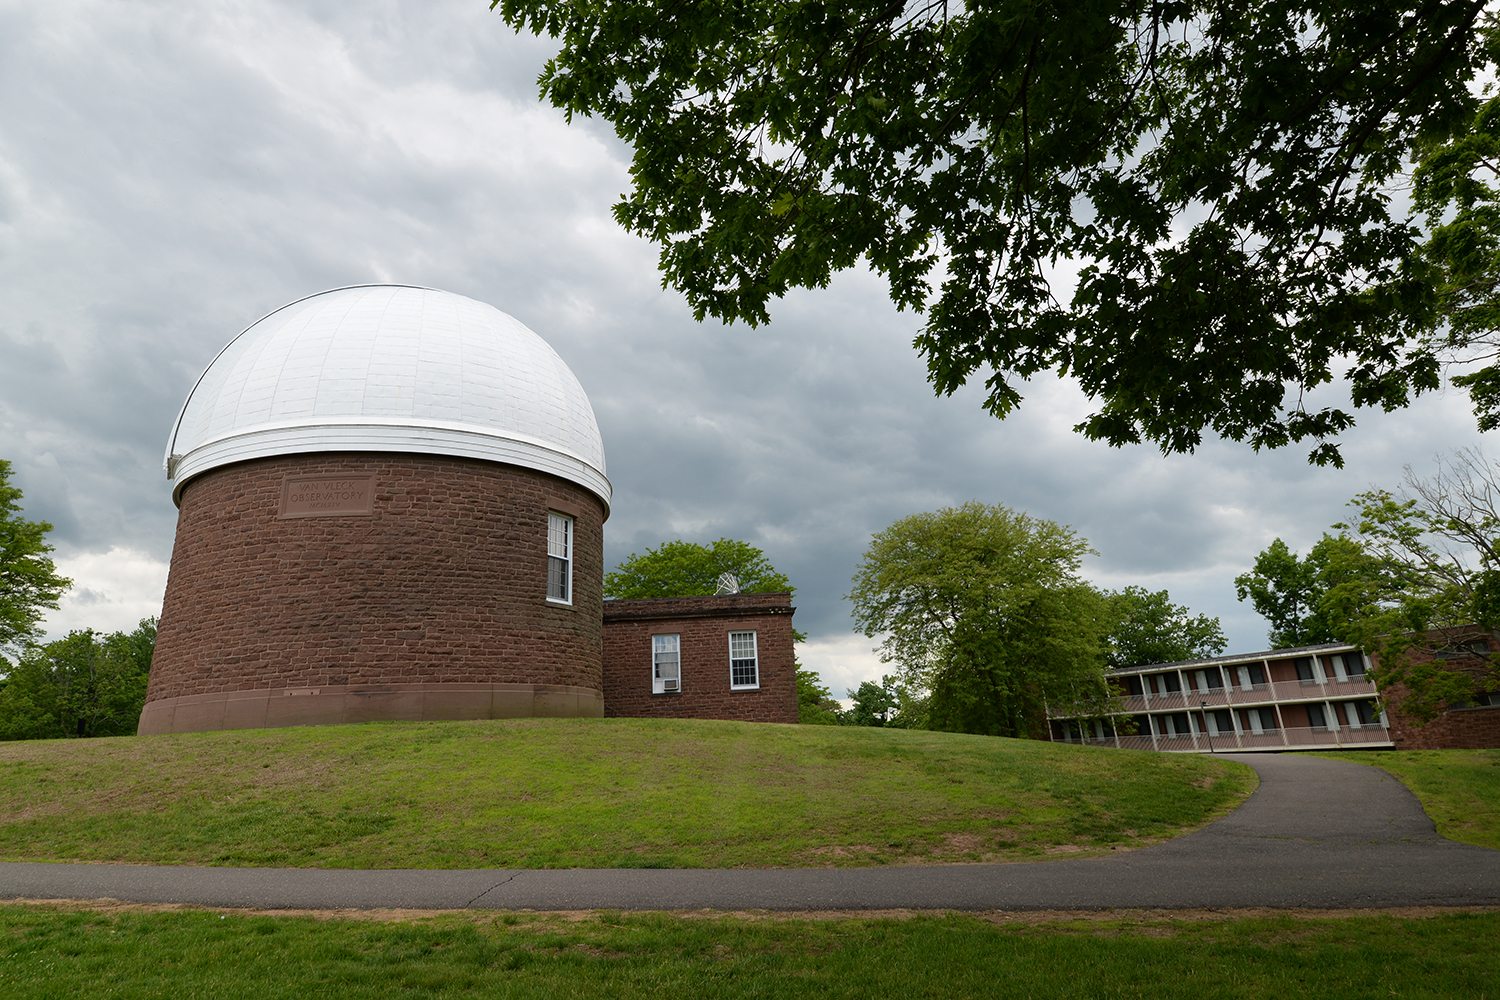 The Van Vleck Observatory on Foss Hill.